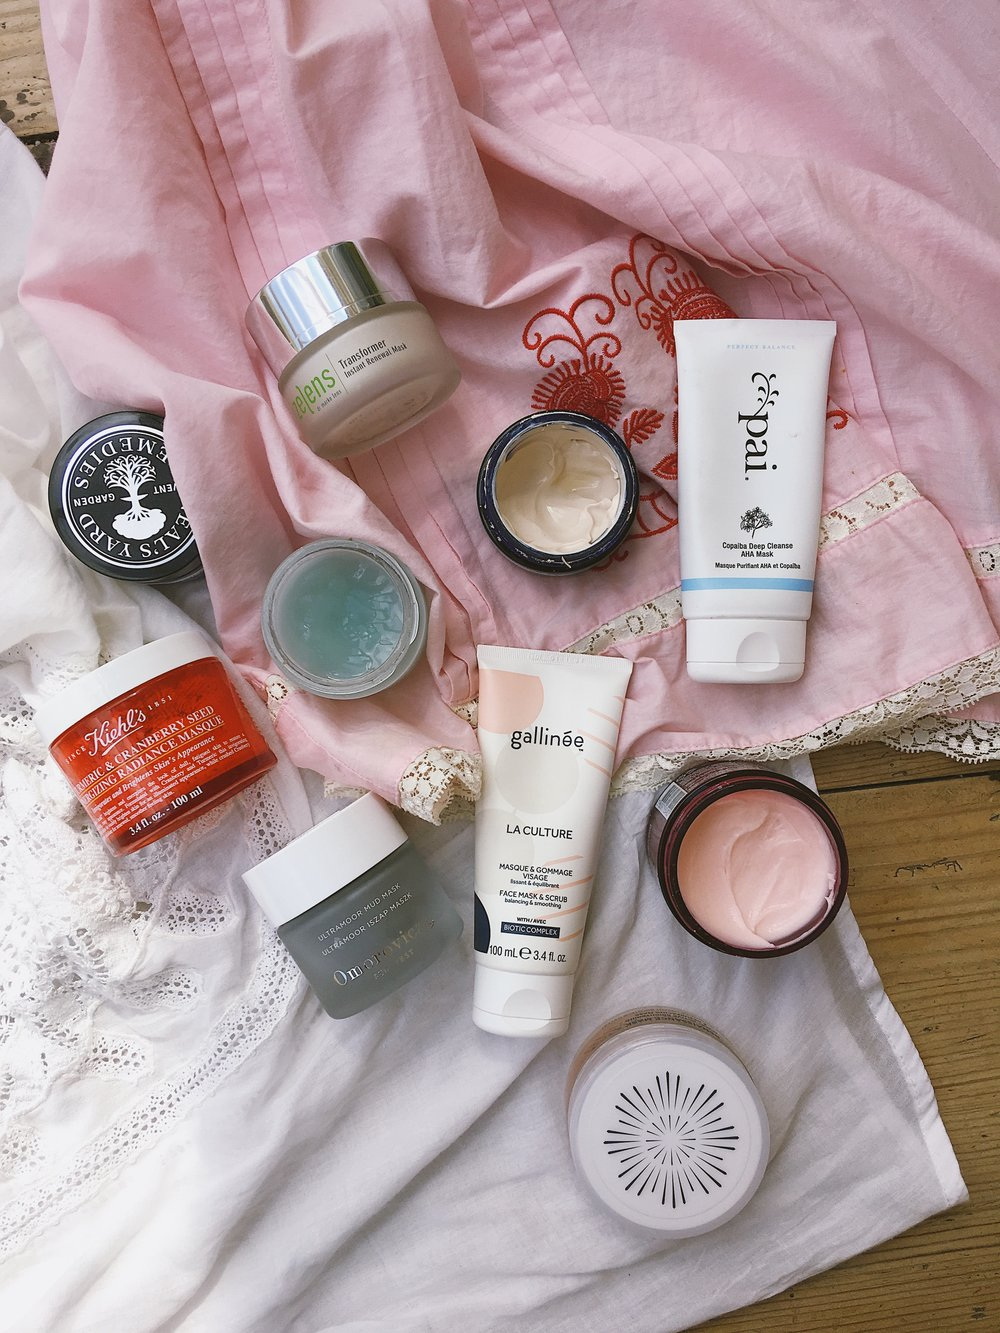 - Struggling with dullness, dryness, irritation or stressed skin? You've come to the right place as this top 10 face mask round up will answer all of your skincare woes in face mask form and recommend a pot, tube or jar for congested skin, radiance, blemishes, dehydration or sensitivity.